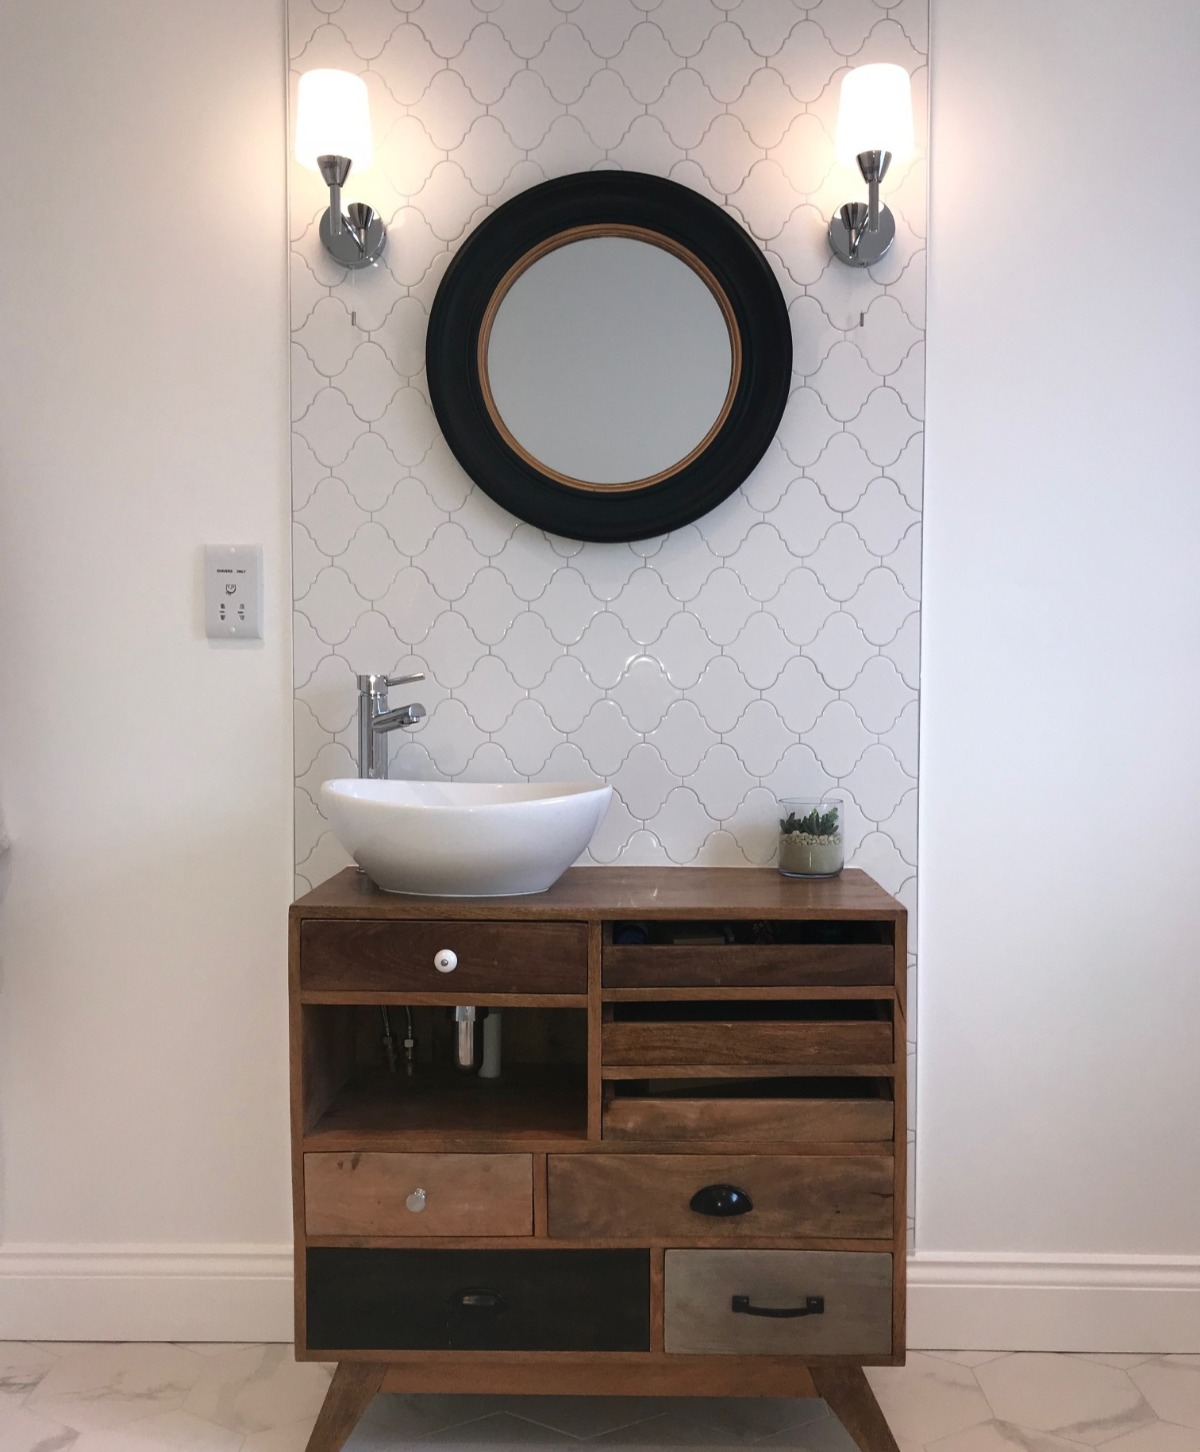 Winter Bathroom Lighting Design Ideas - Pikalily Blog